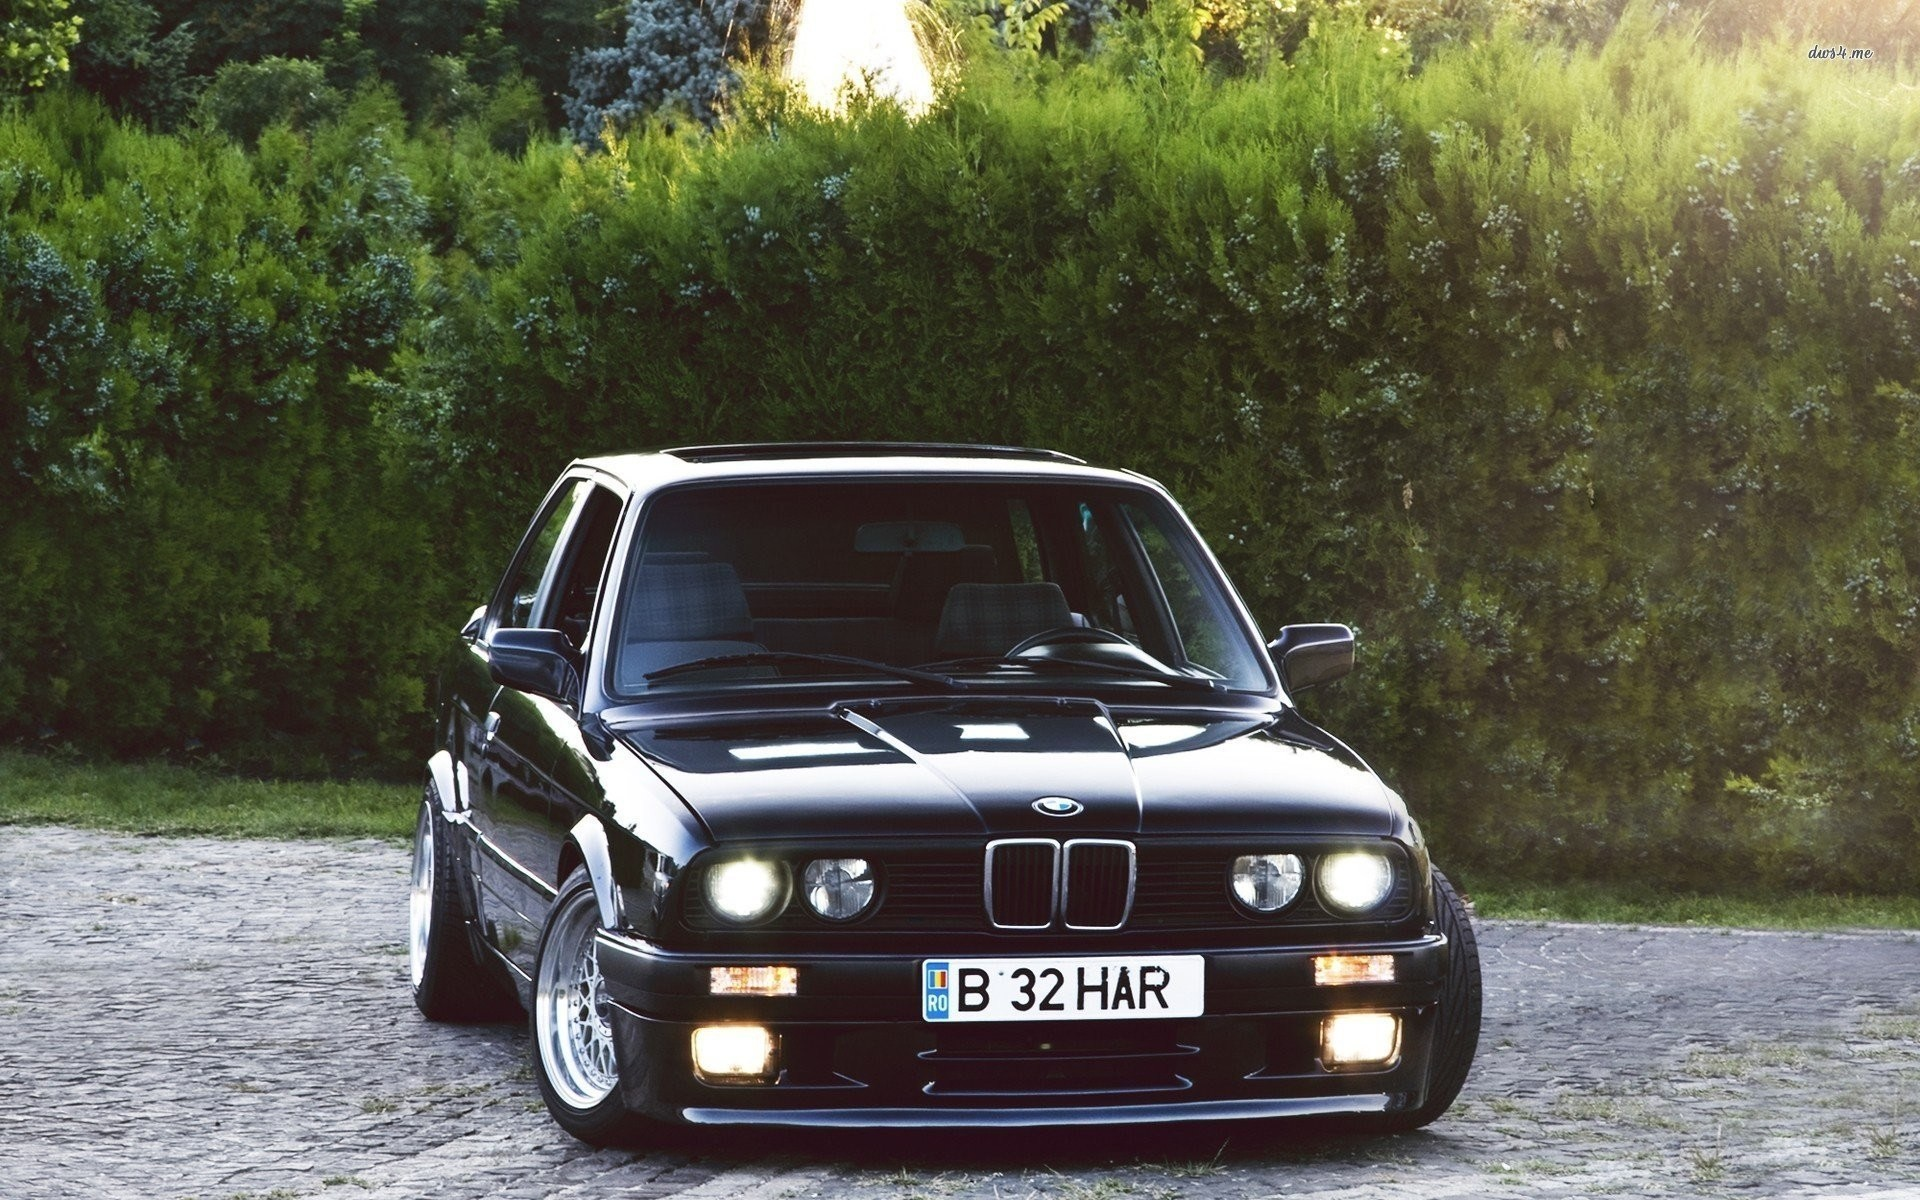 1920x1200 Bmw E30 Wallpaper Hd 67 Bilder 3 Series Schwarz